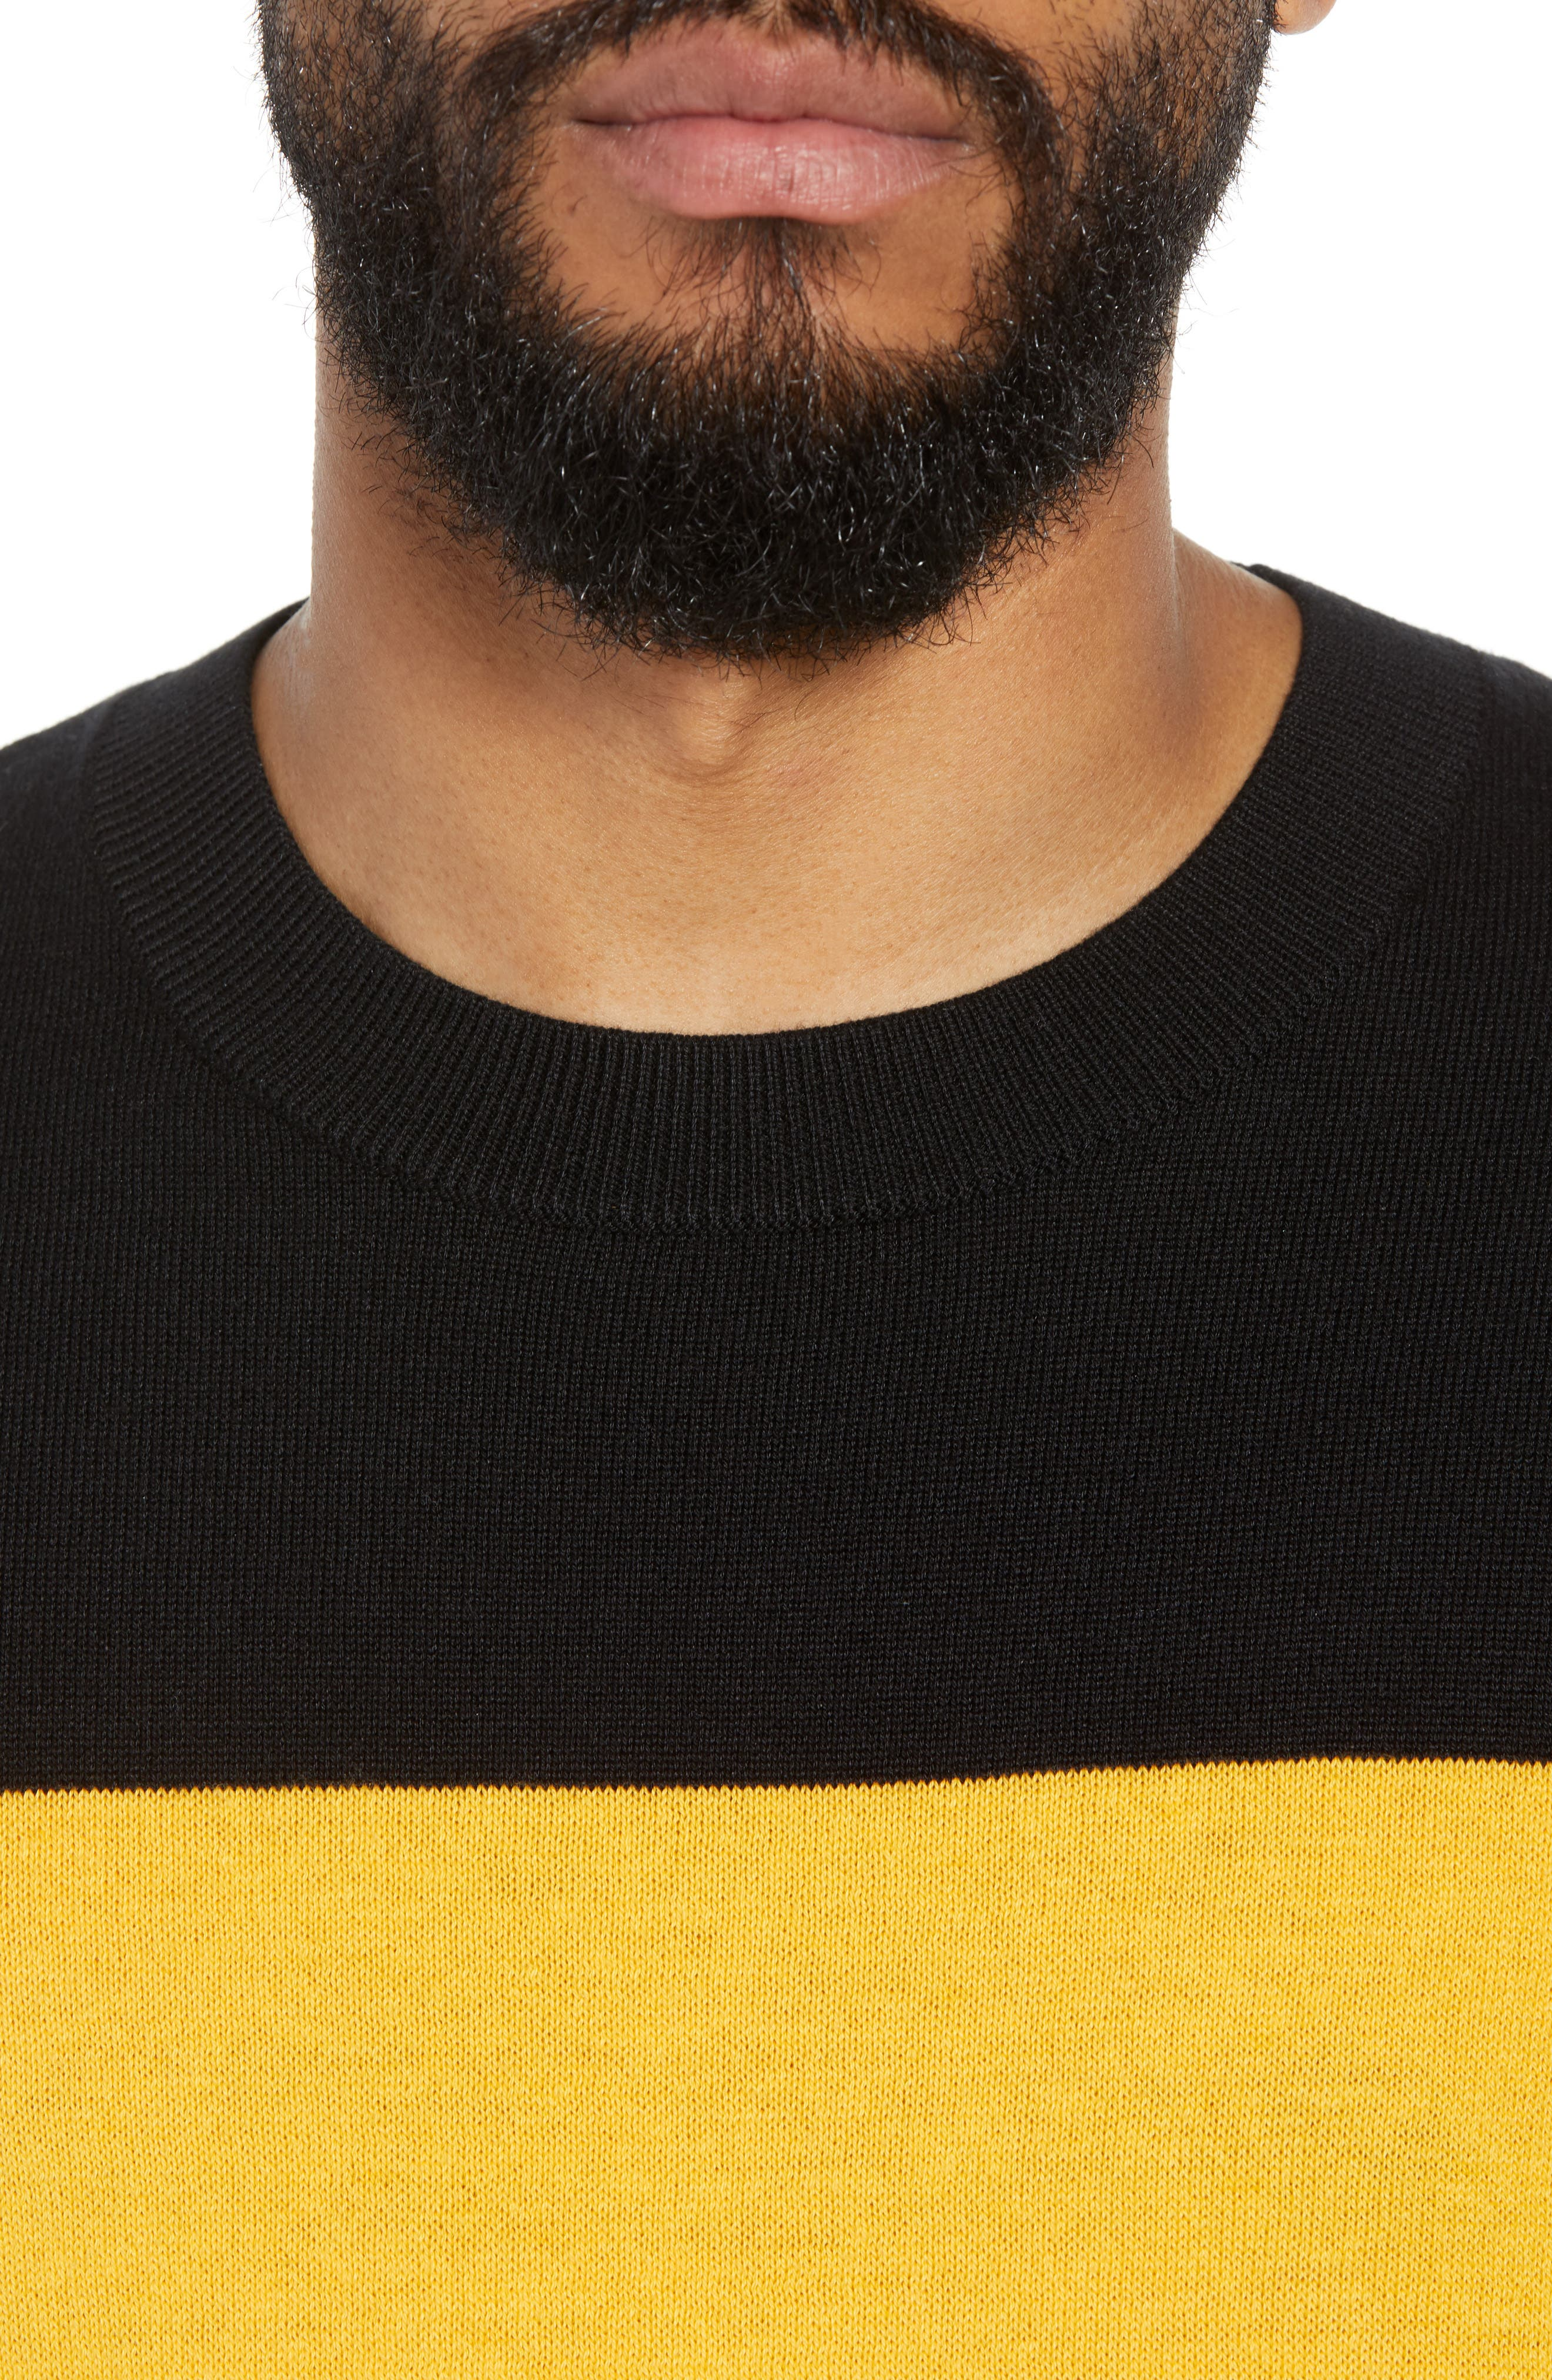 Rugby Stripe Sweater,                             Alternate thumbnail 4, color,                             BLACK YELLOW RUGBY STRIPE